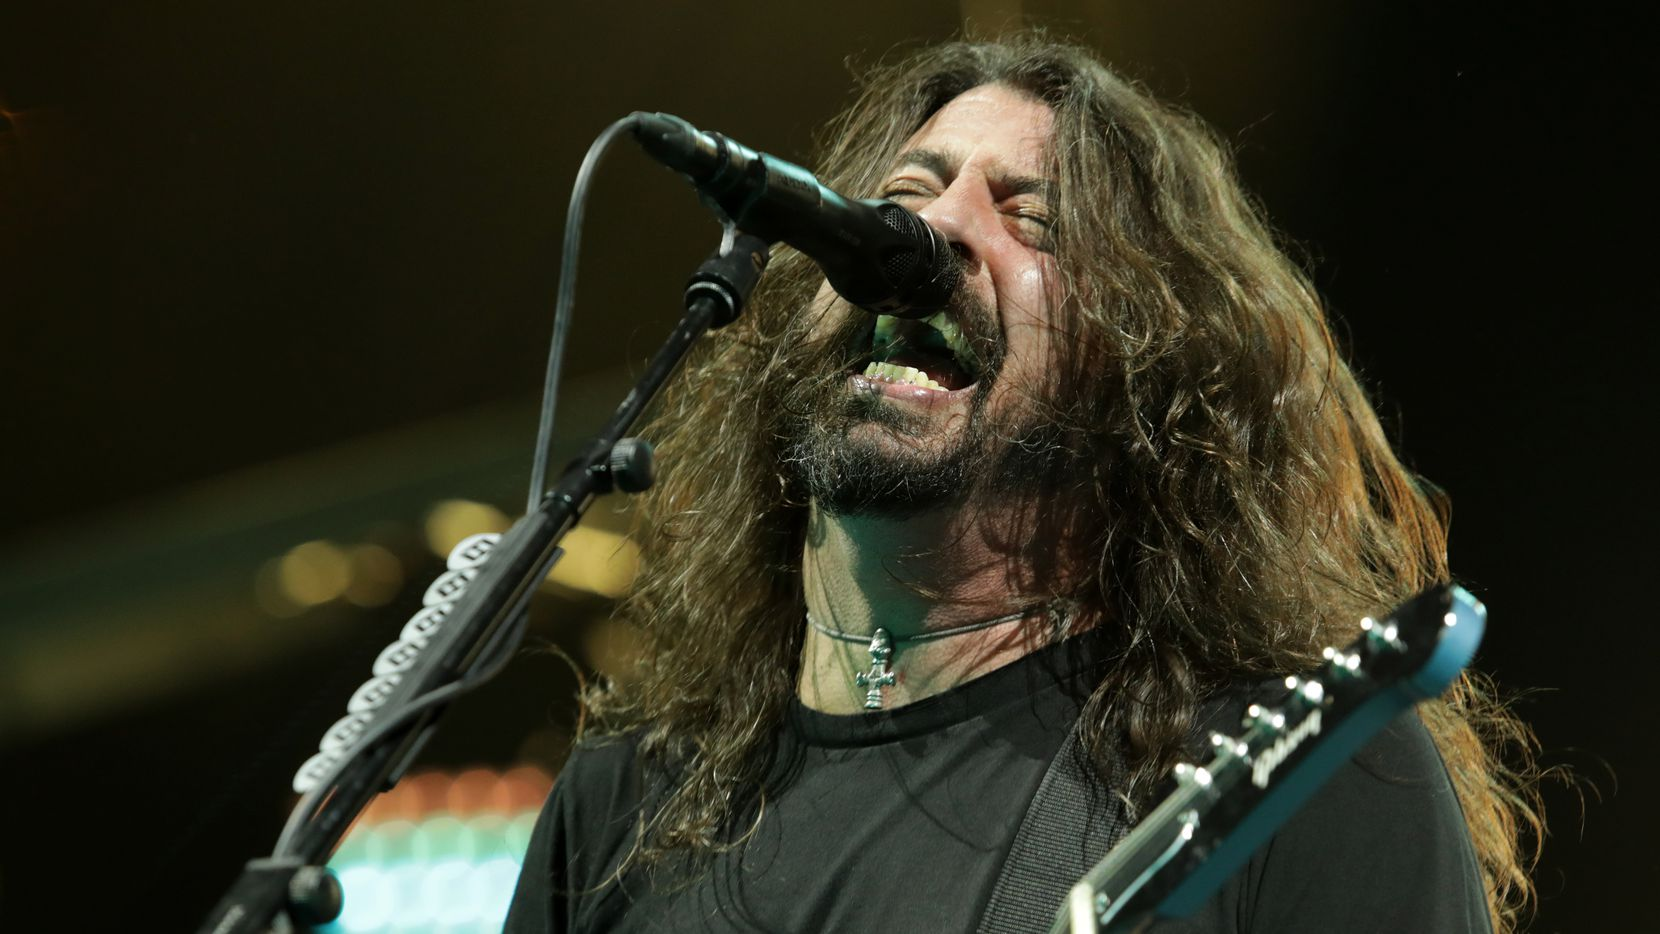 Dave Grohl and the Foo Fighters performed at Dos Equis Pavilion in Dallas on April 21, 2018.